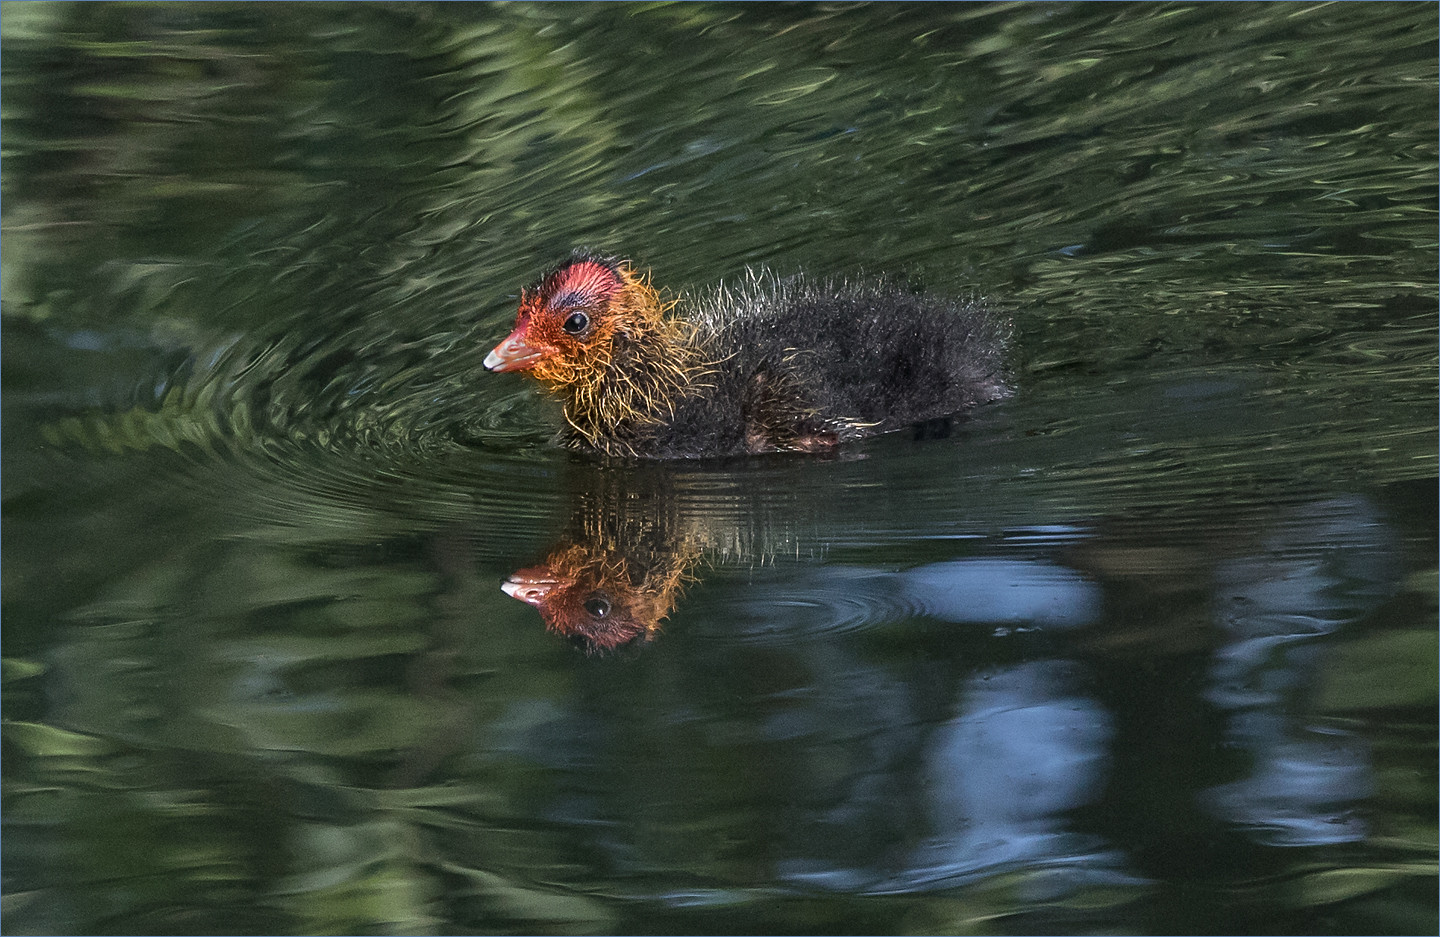 Coot Chick by Mandy B